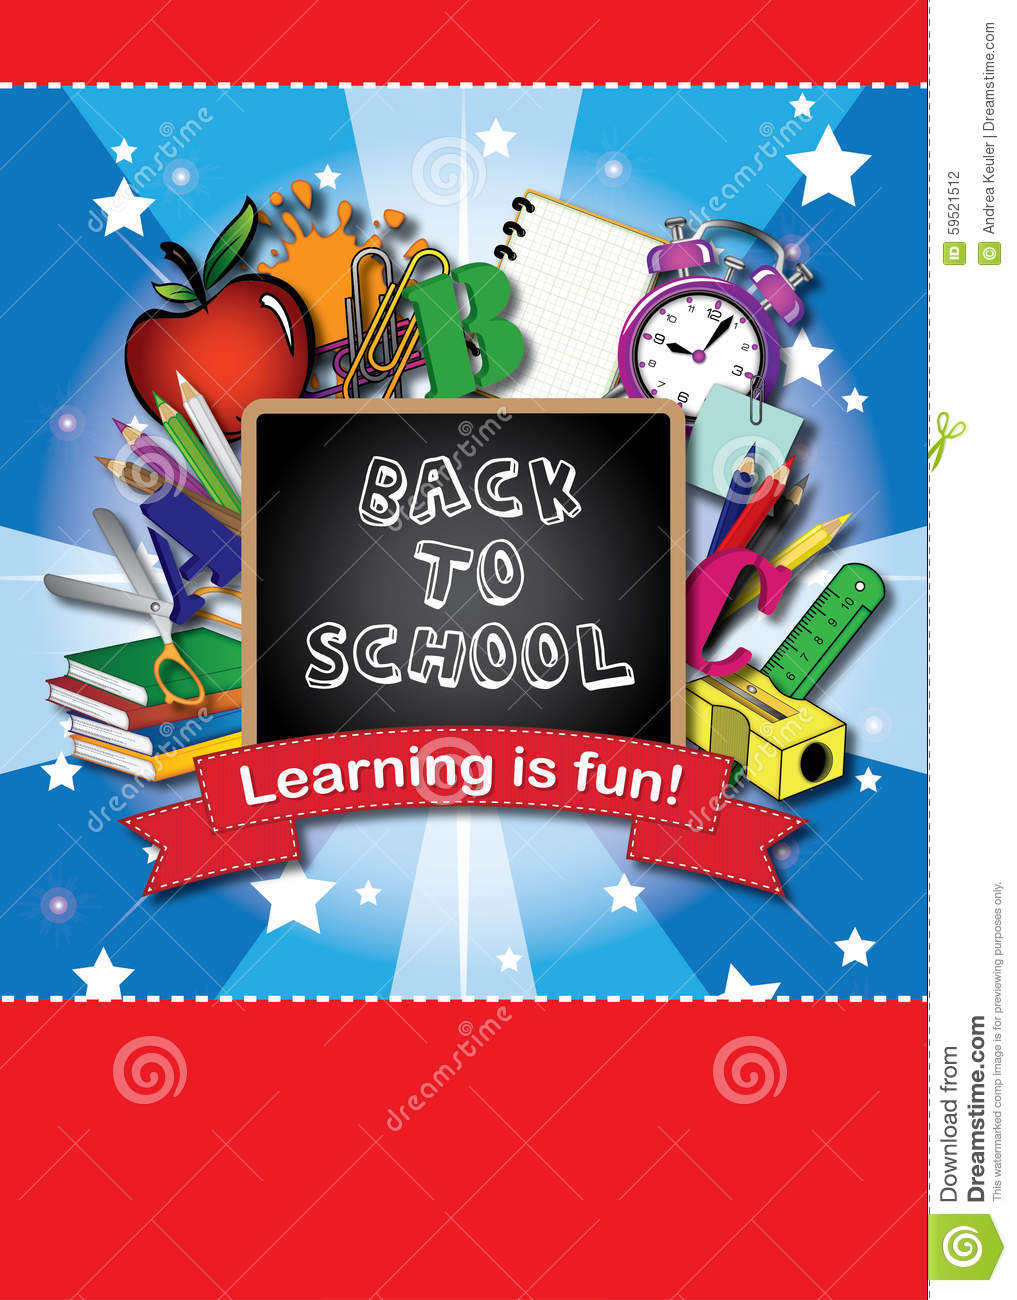 Book Cover For School ~ Back to school book cover stock illustration